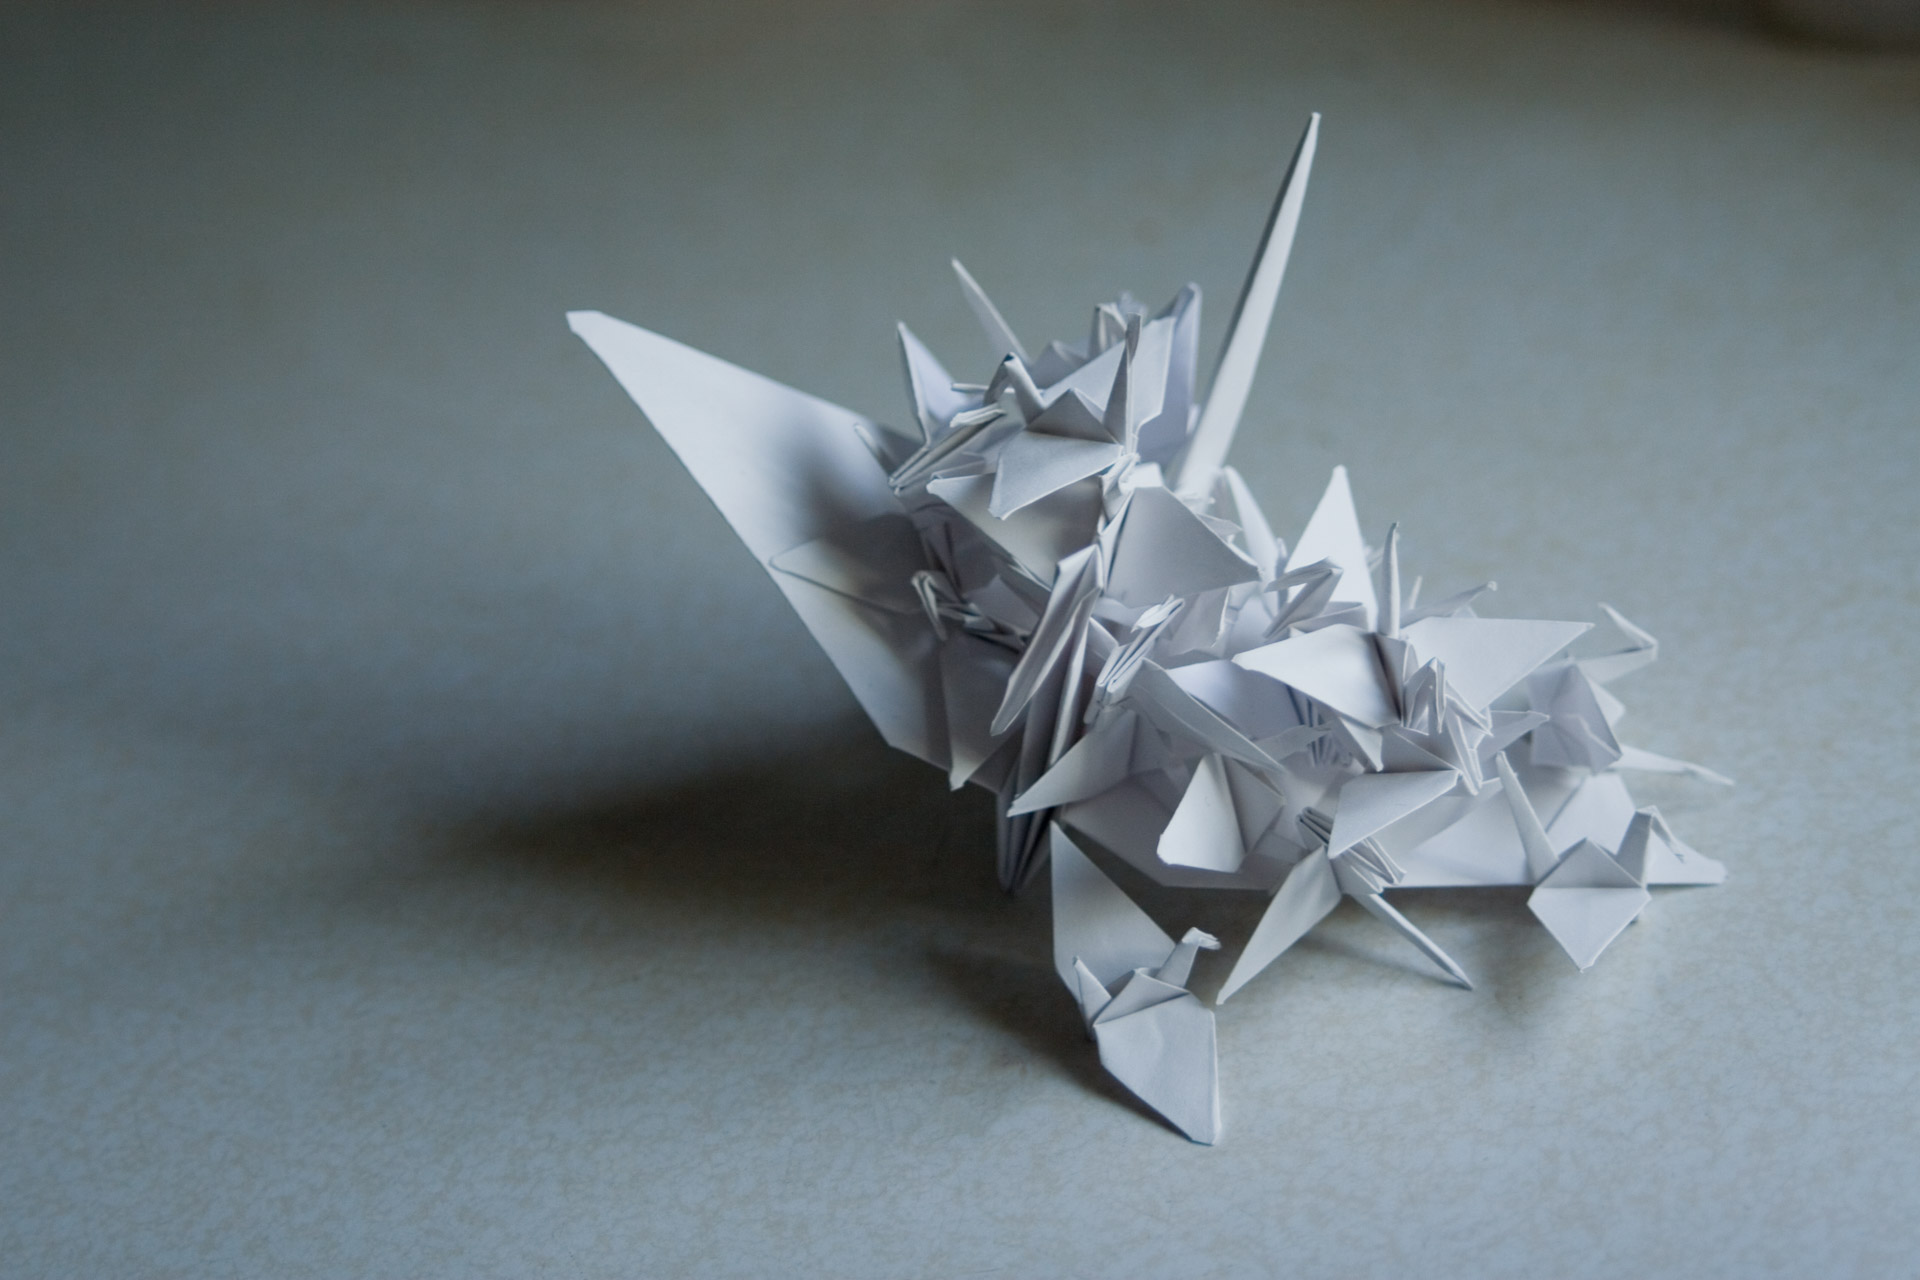 Large and small white paper cranes on a counter top.